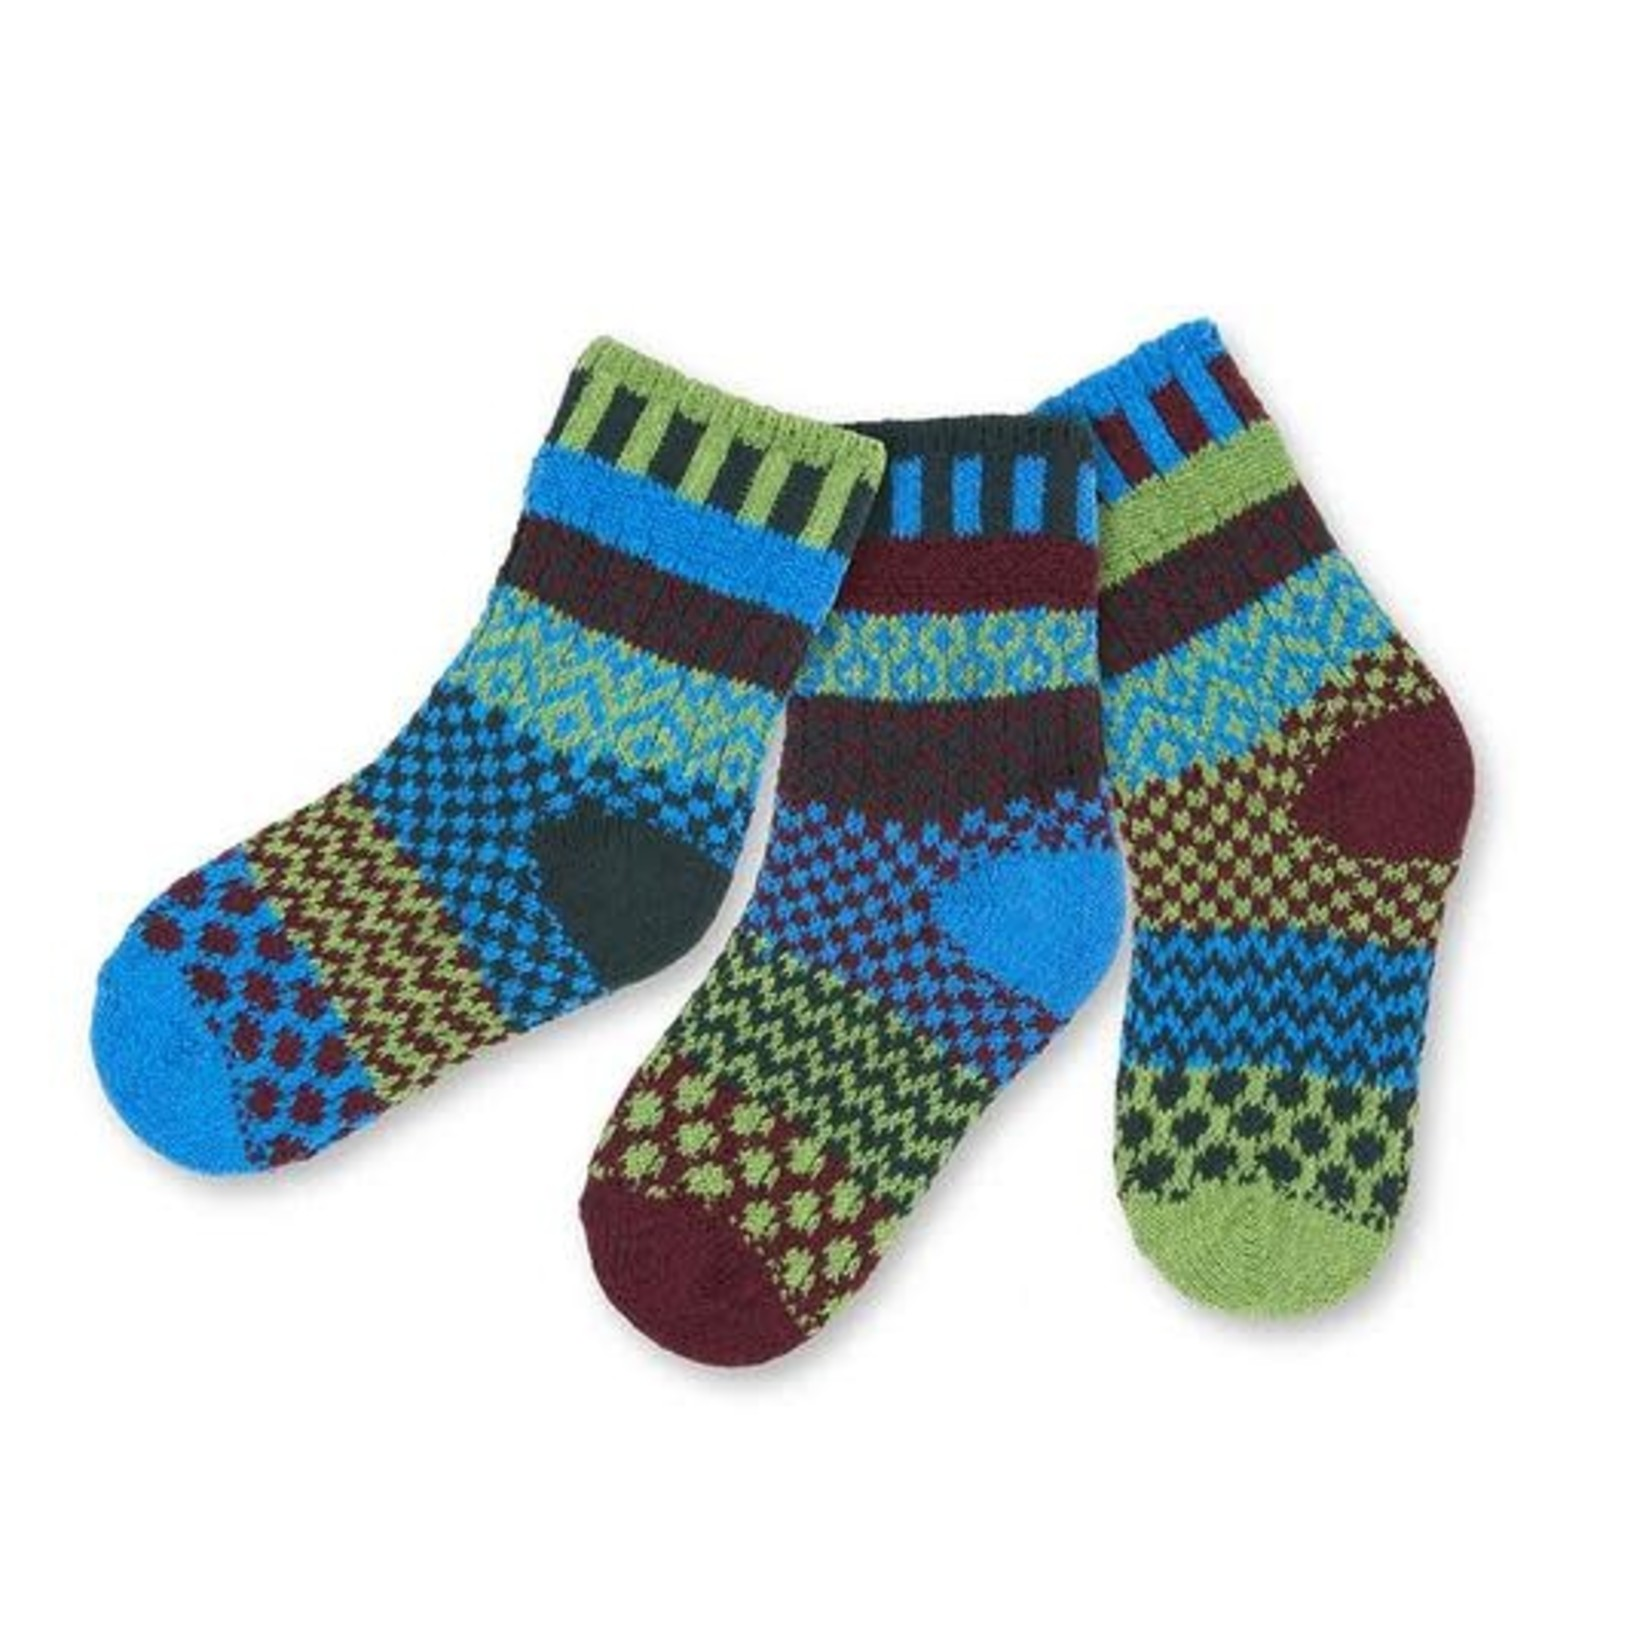 JUNE BUG KIDS SOCKS